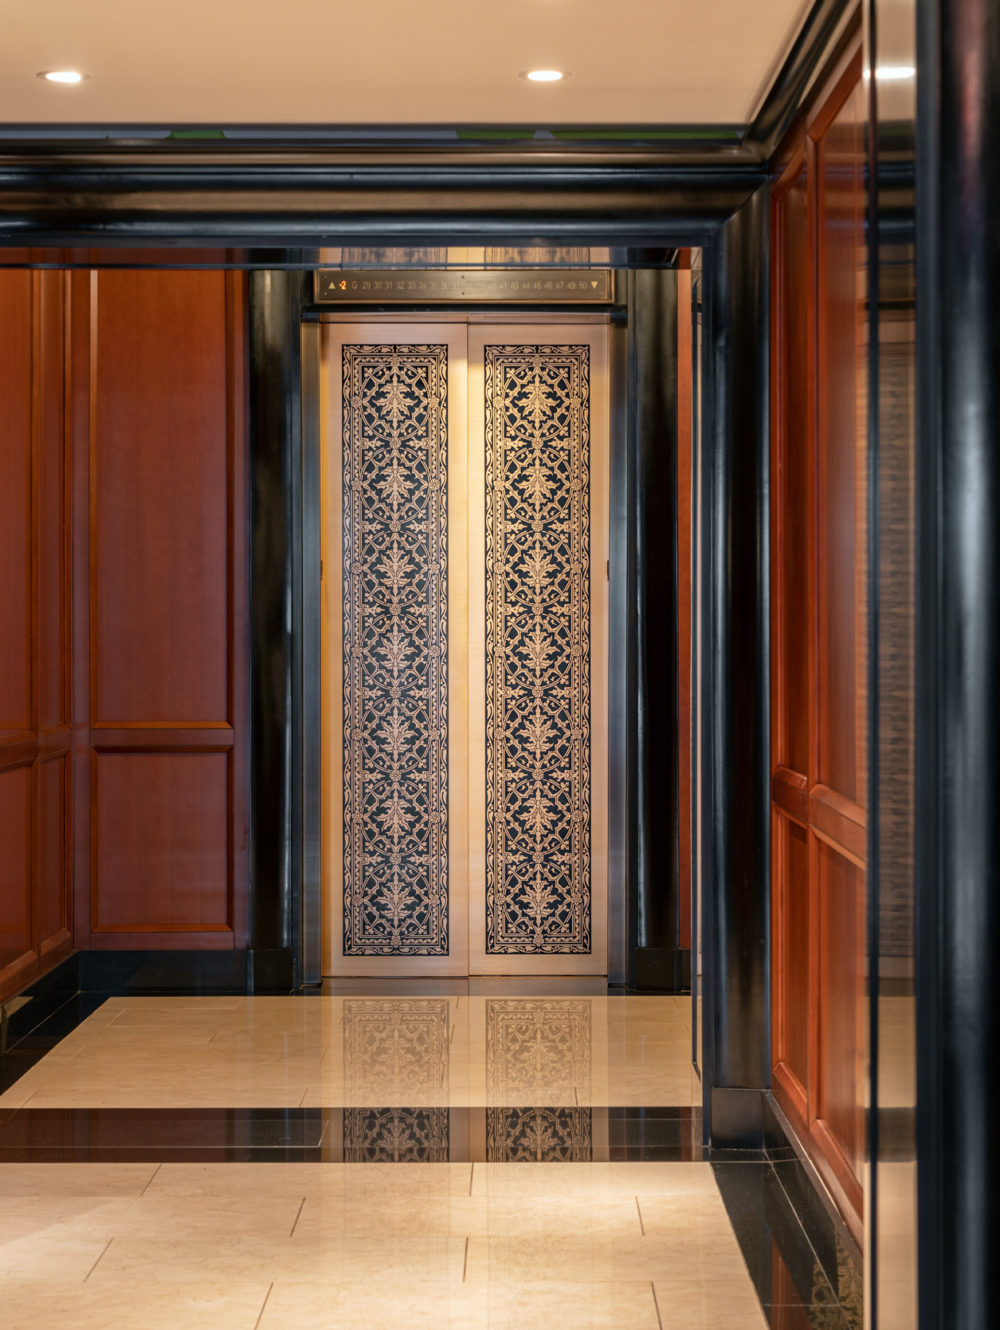 Elevator lobby at the Woolworth Tower condos in New York. Dark wood walls with black finishings and a gold elevator gate.